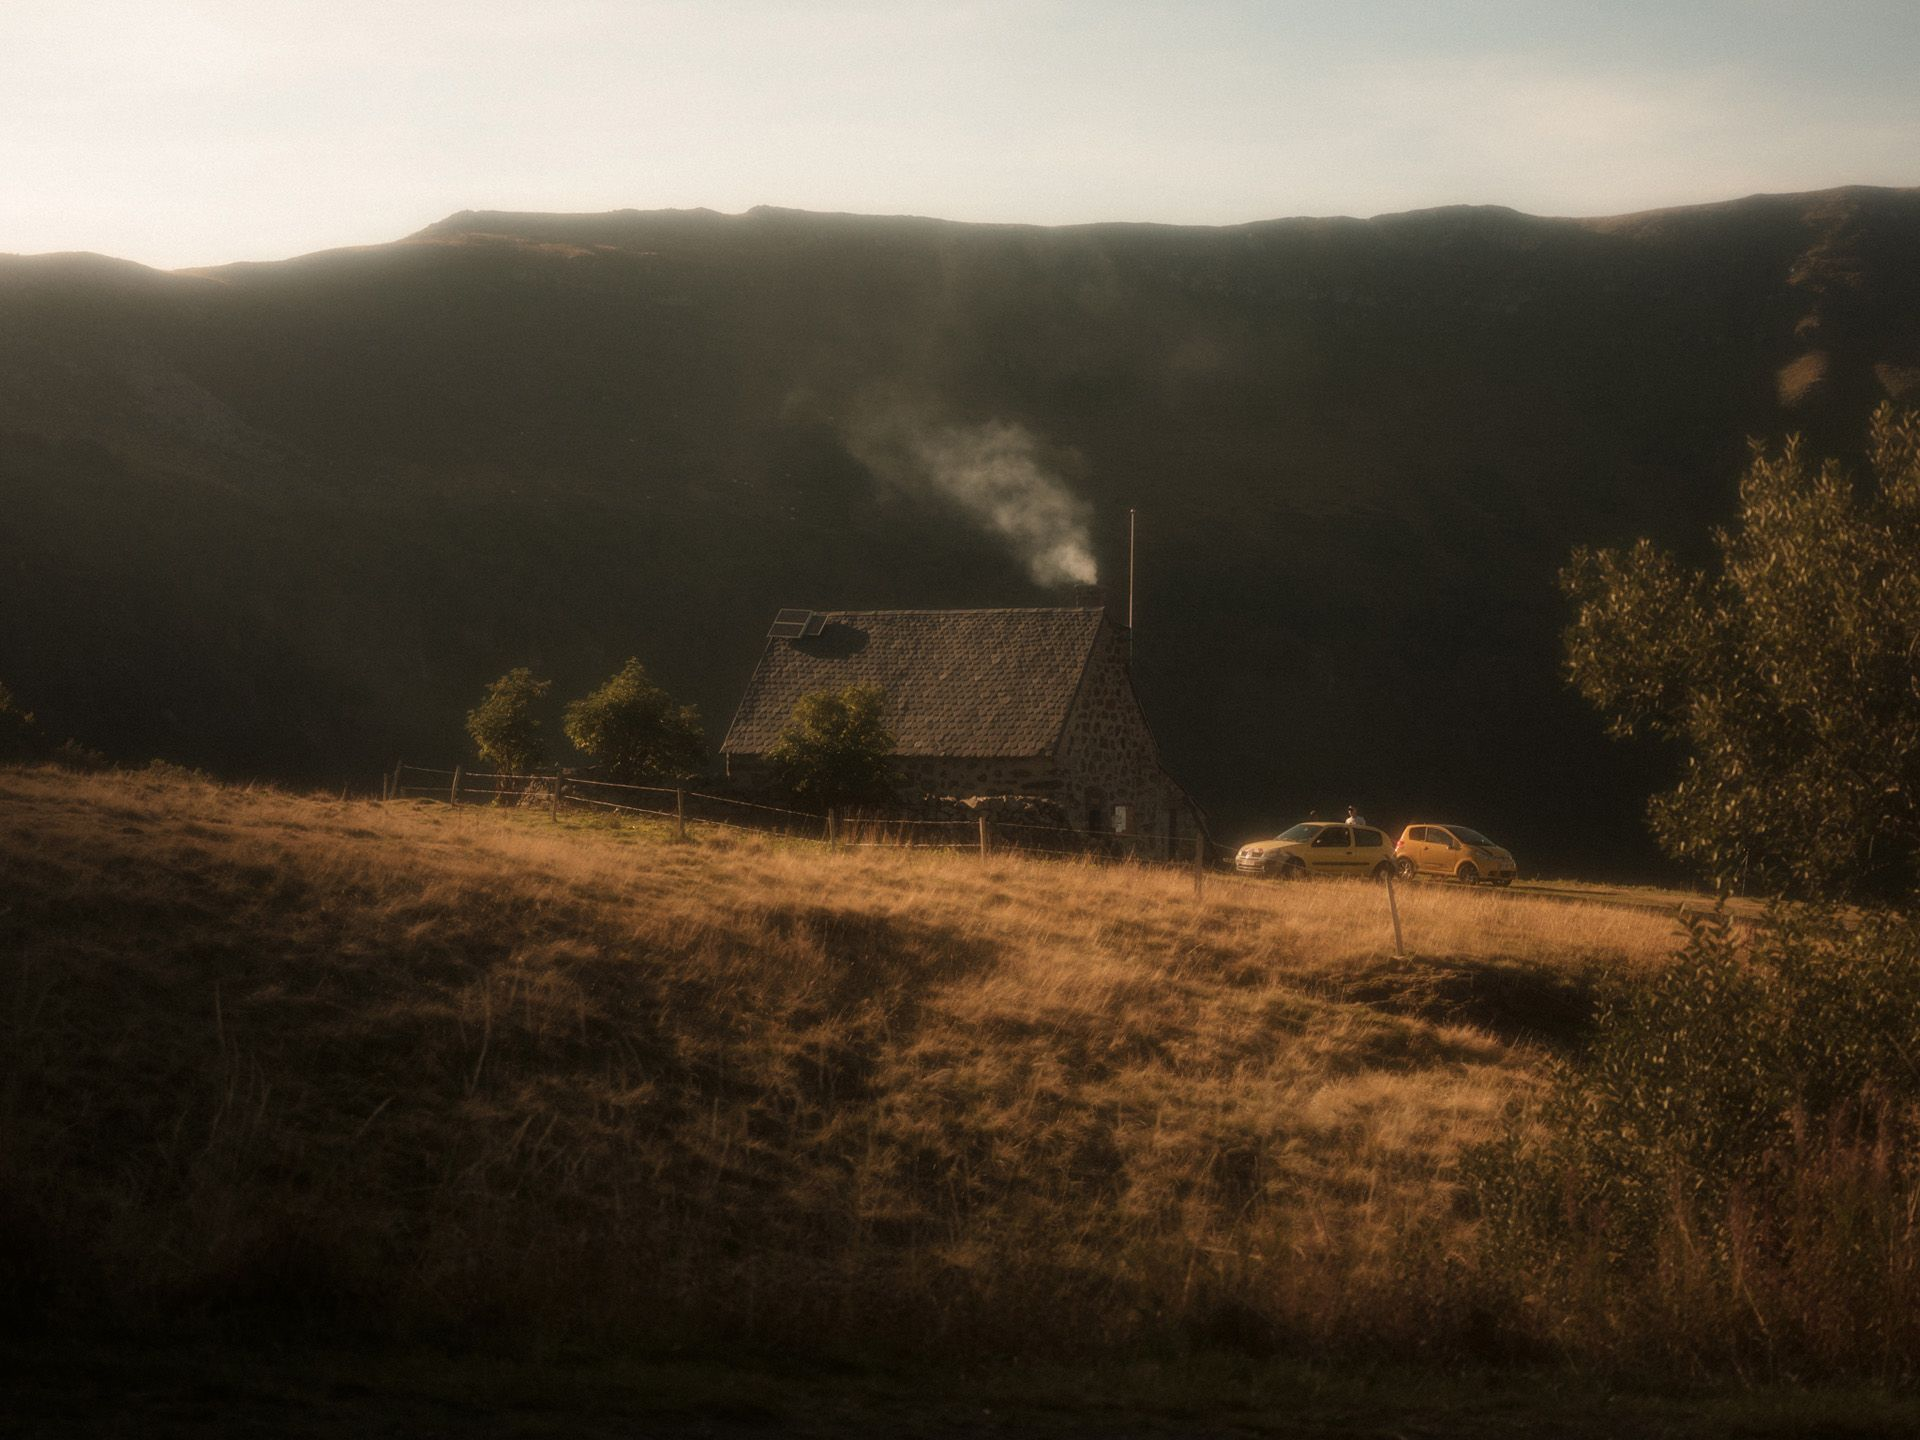 little stone farm house in french countryside by Alexi Hobbs in Auvergne for Reflets de France